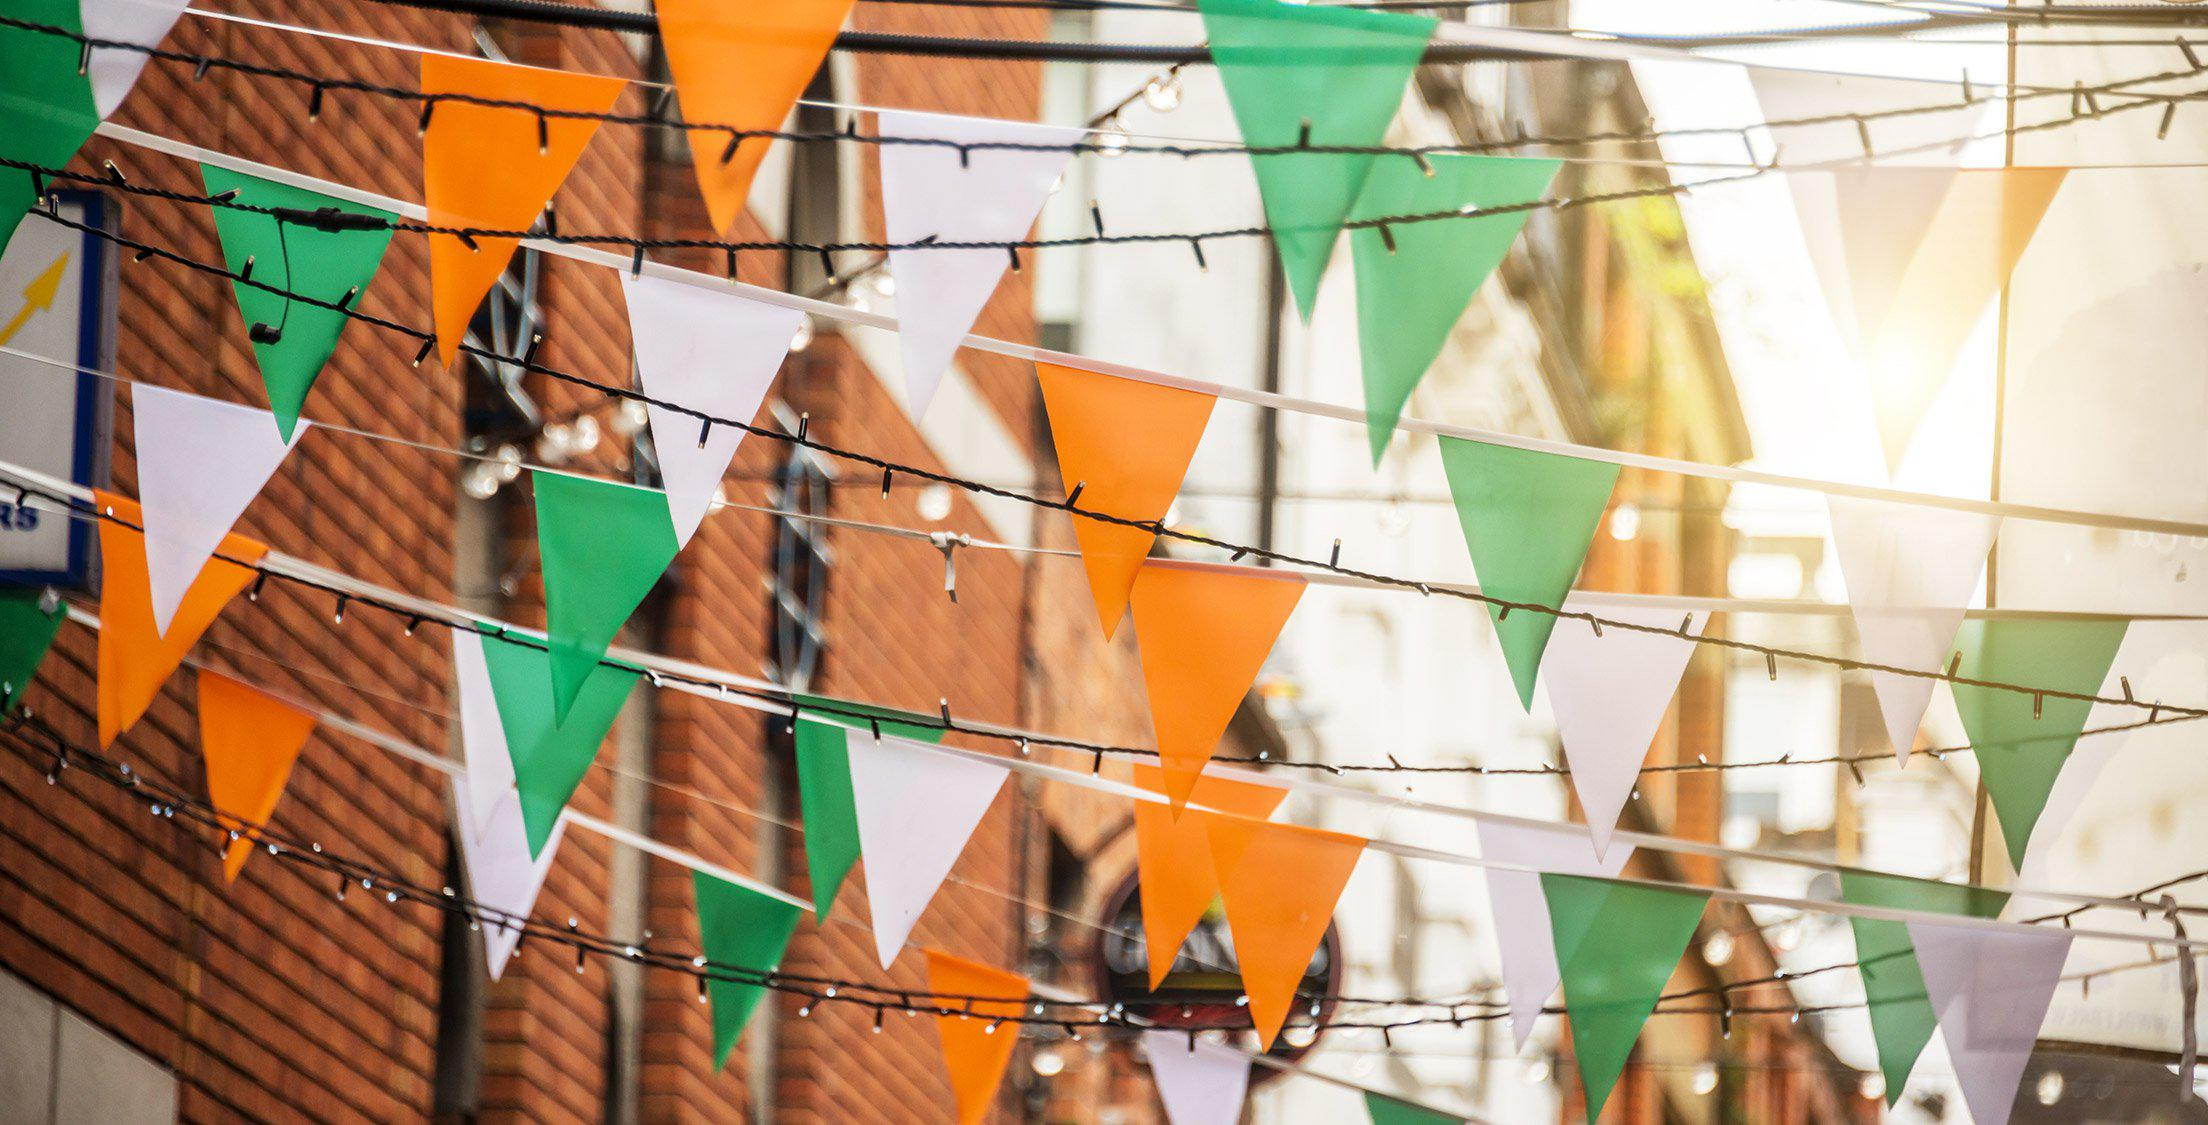 How much do you ACTUALLY know about St. Patrick's Day?